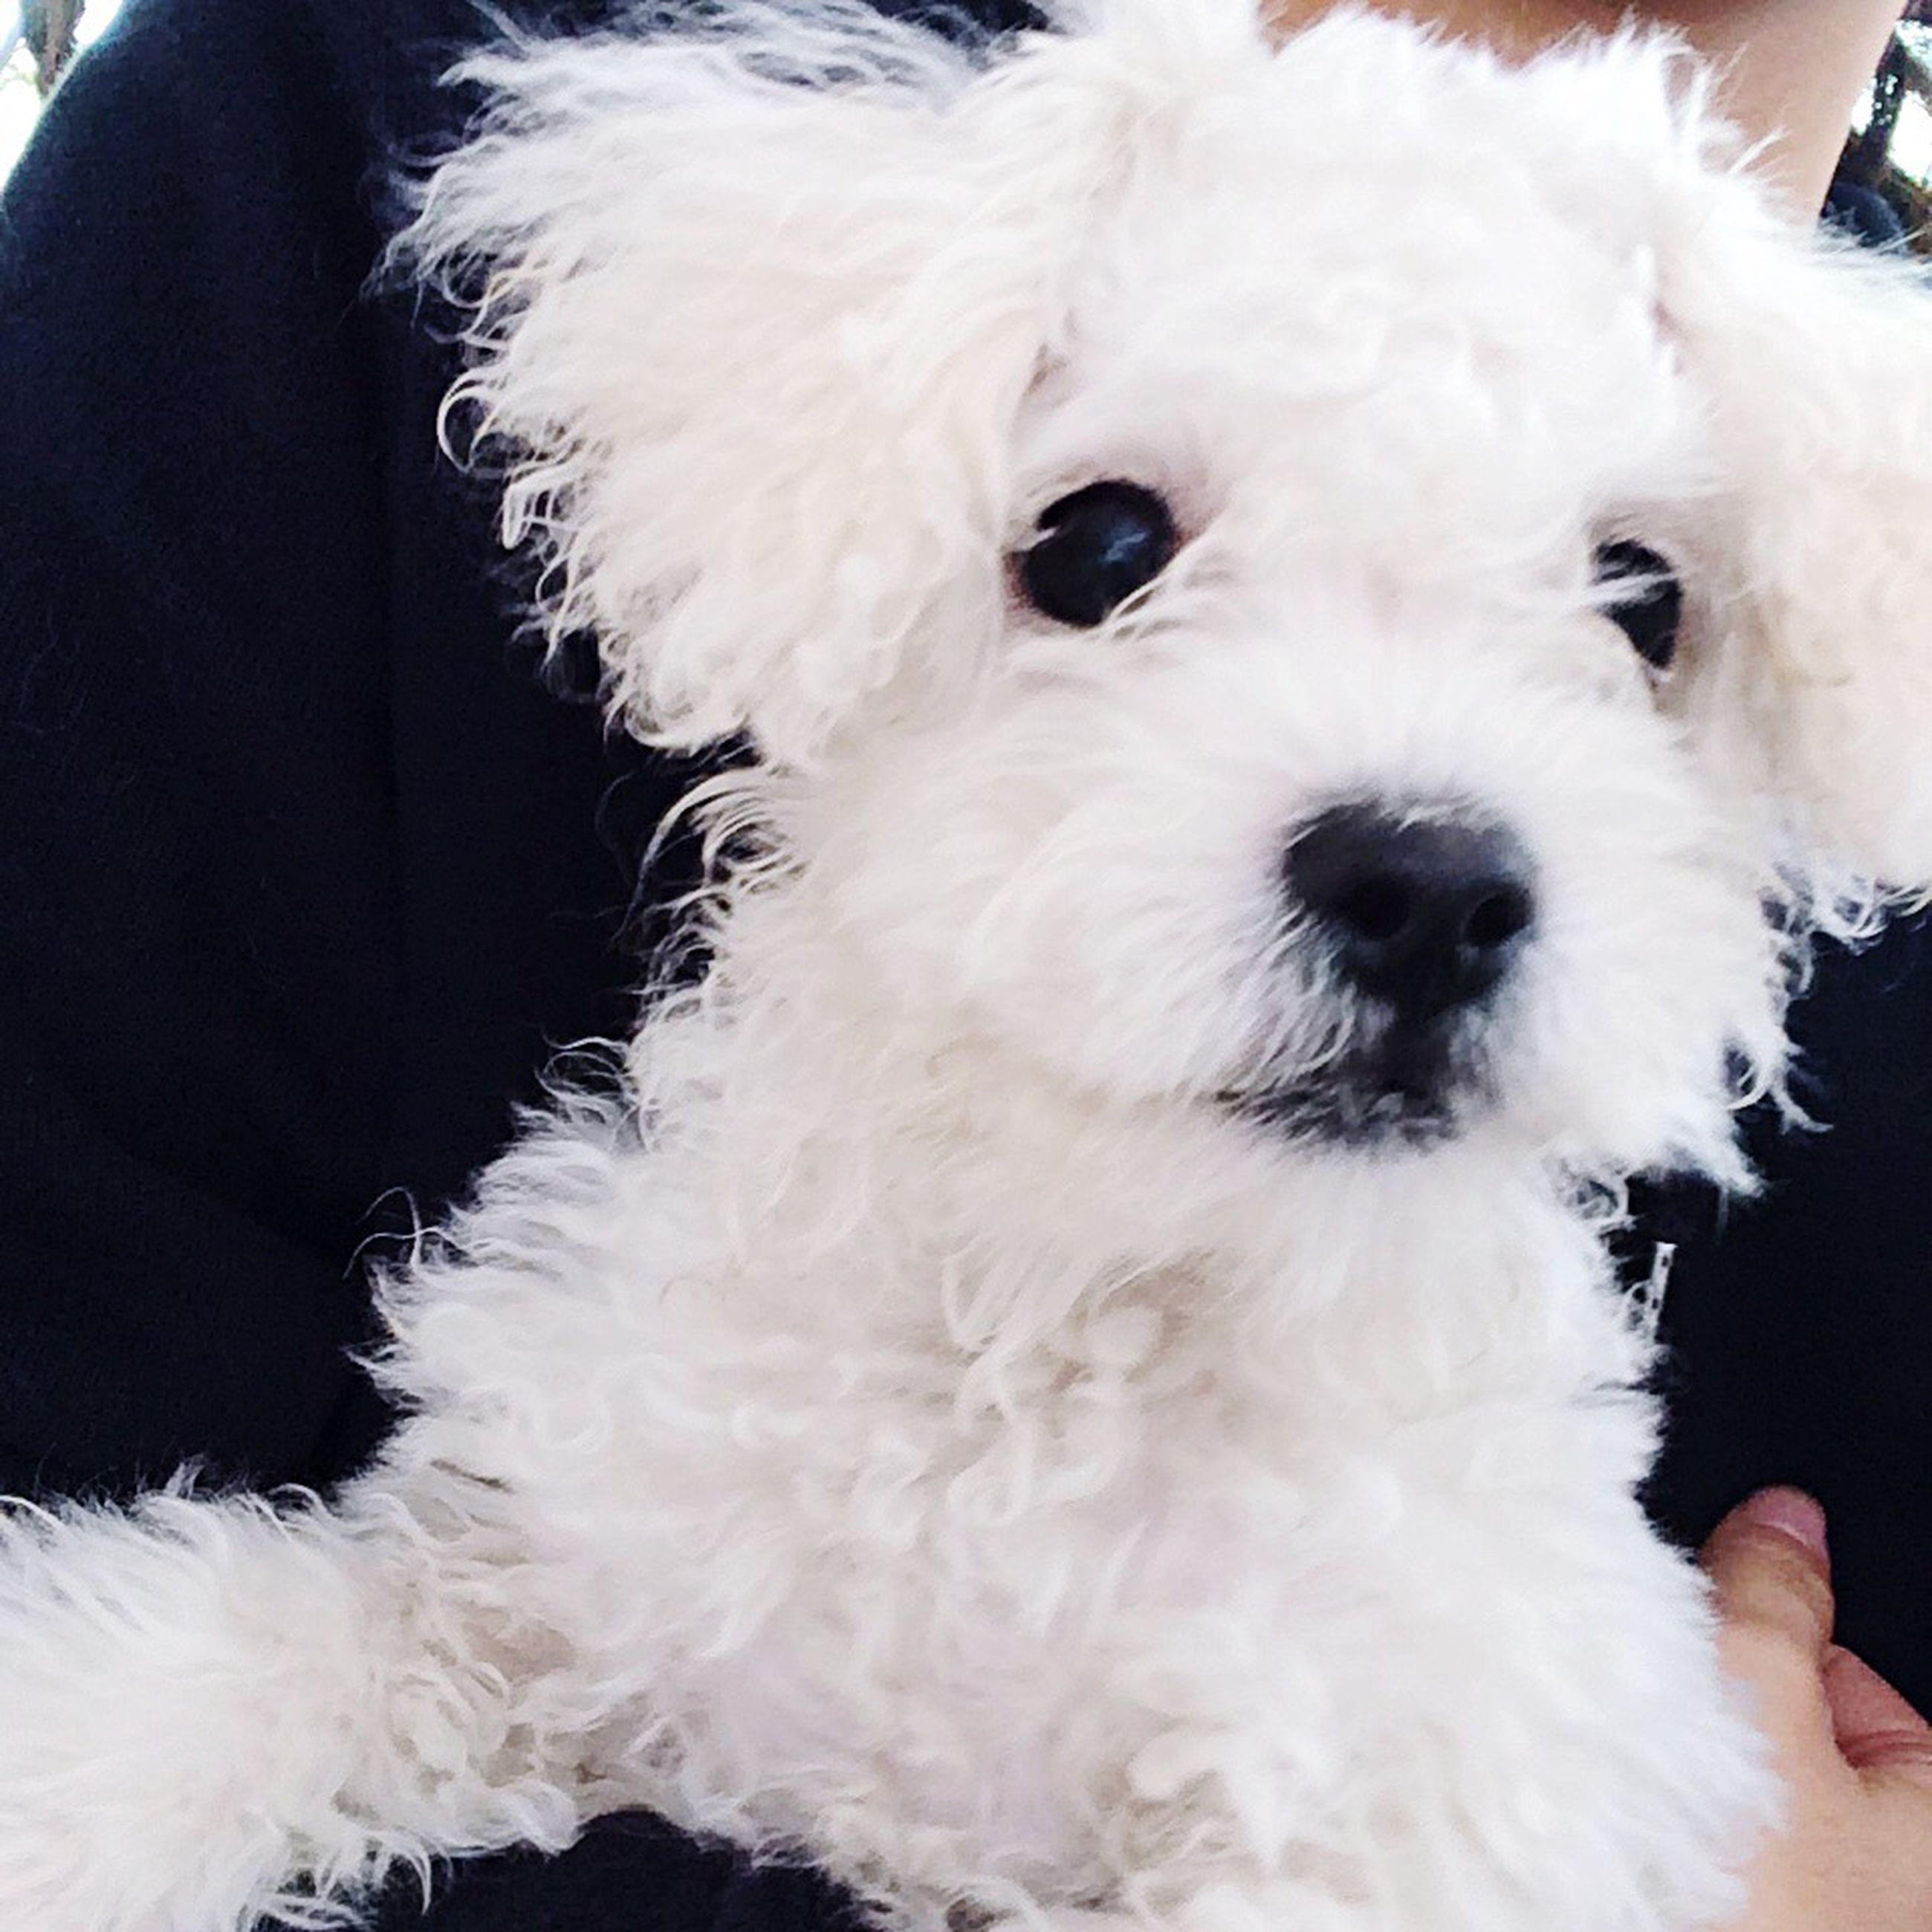 pets, domestic animals, dog, animal themes, one animal, mammal, portrait, looking at camera, close-up, west highland white terrier, no people, pet clothing, outdoors, day